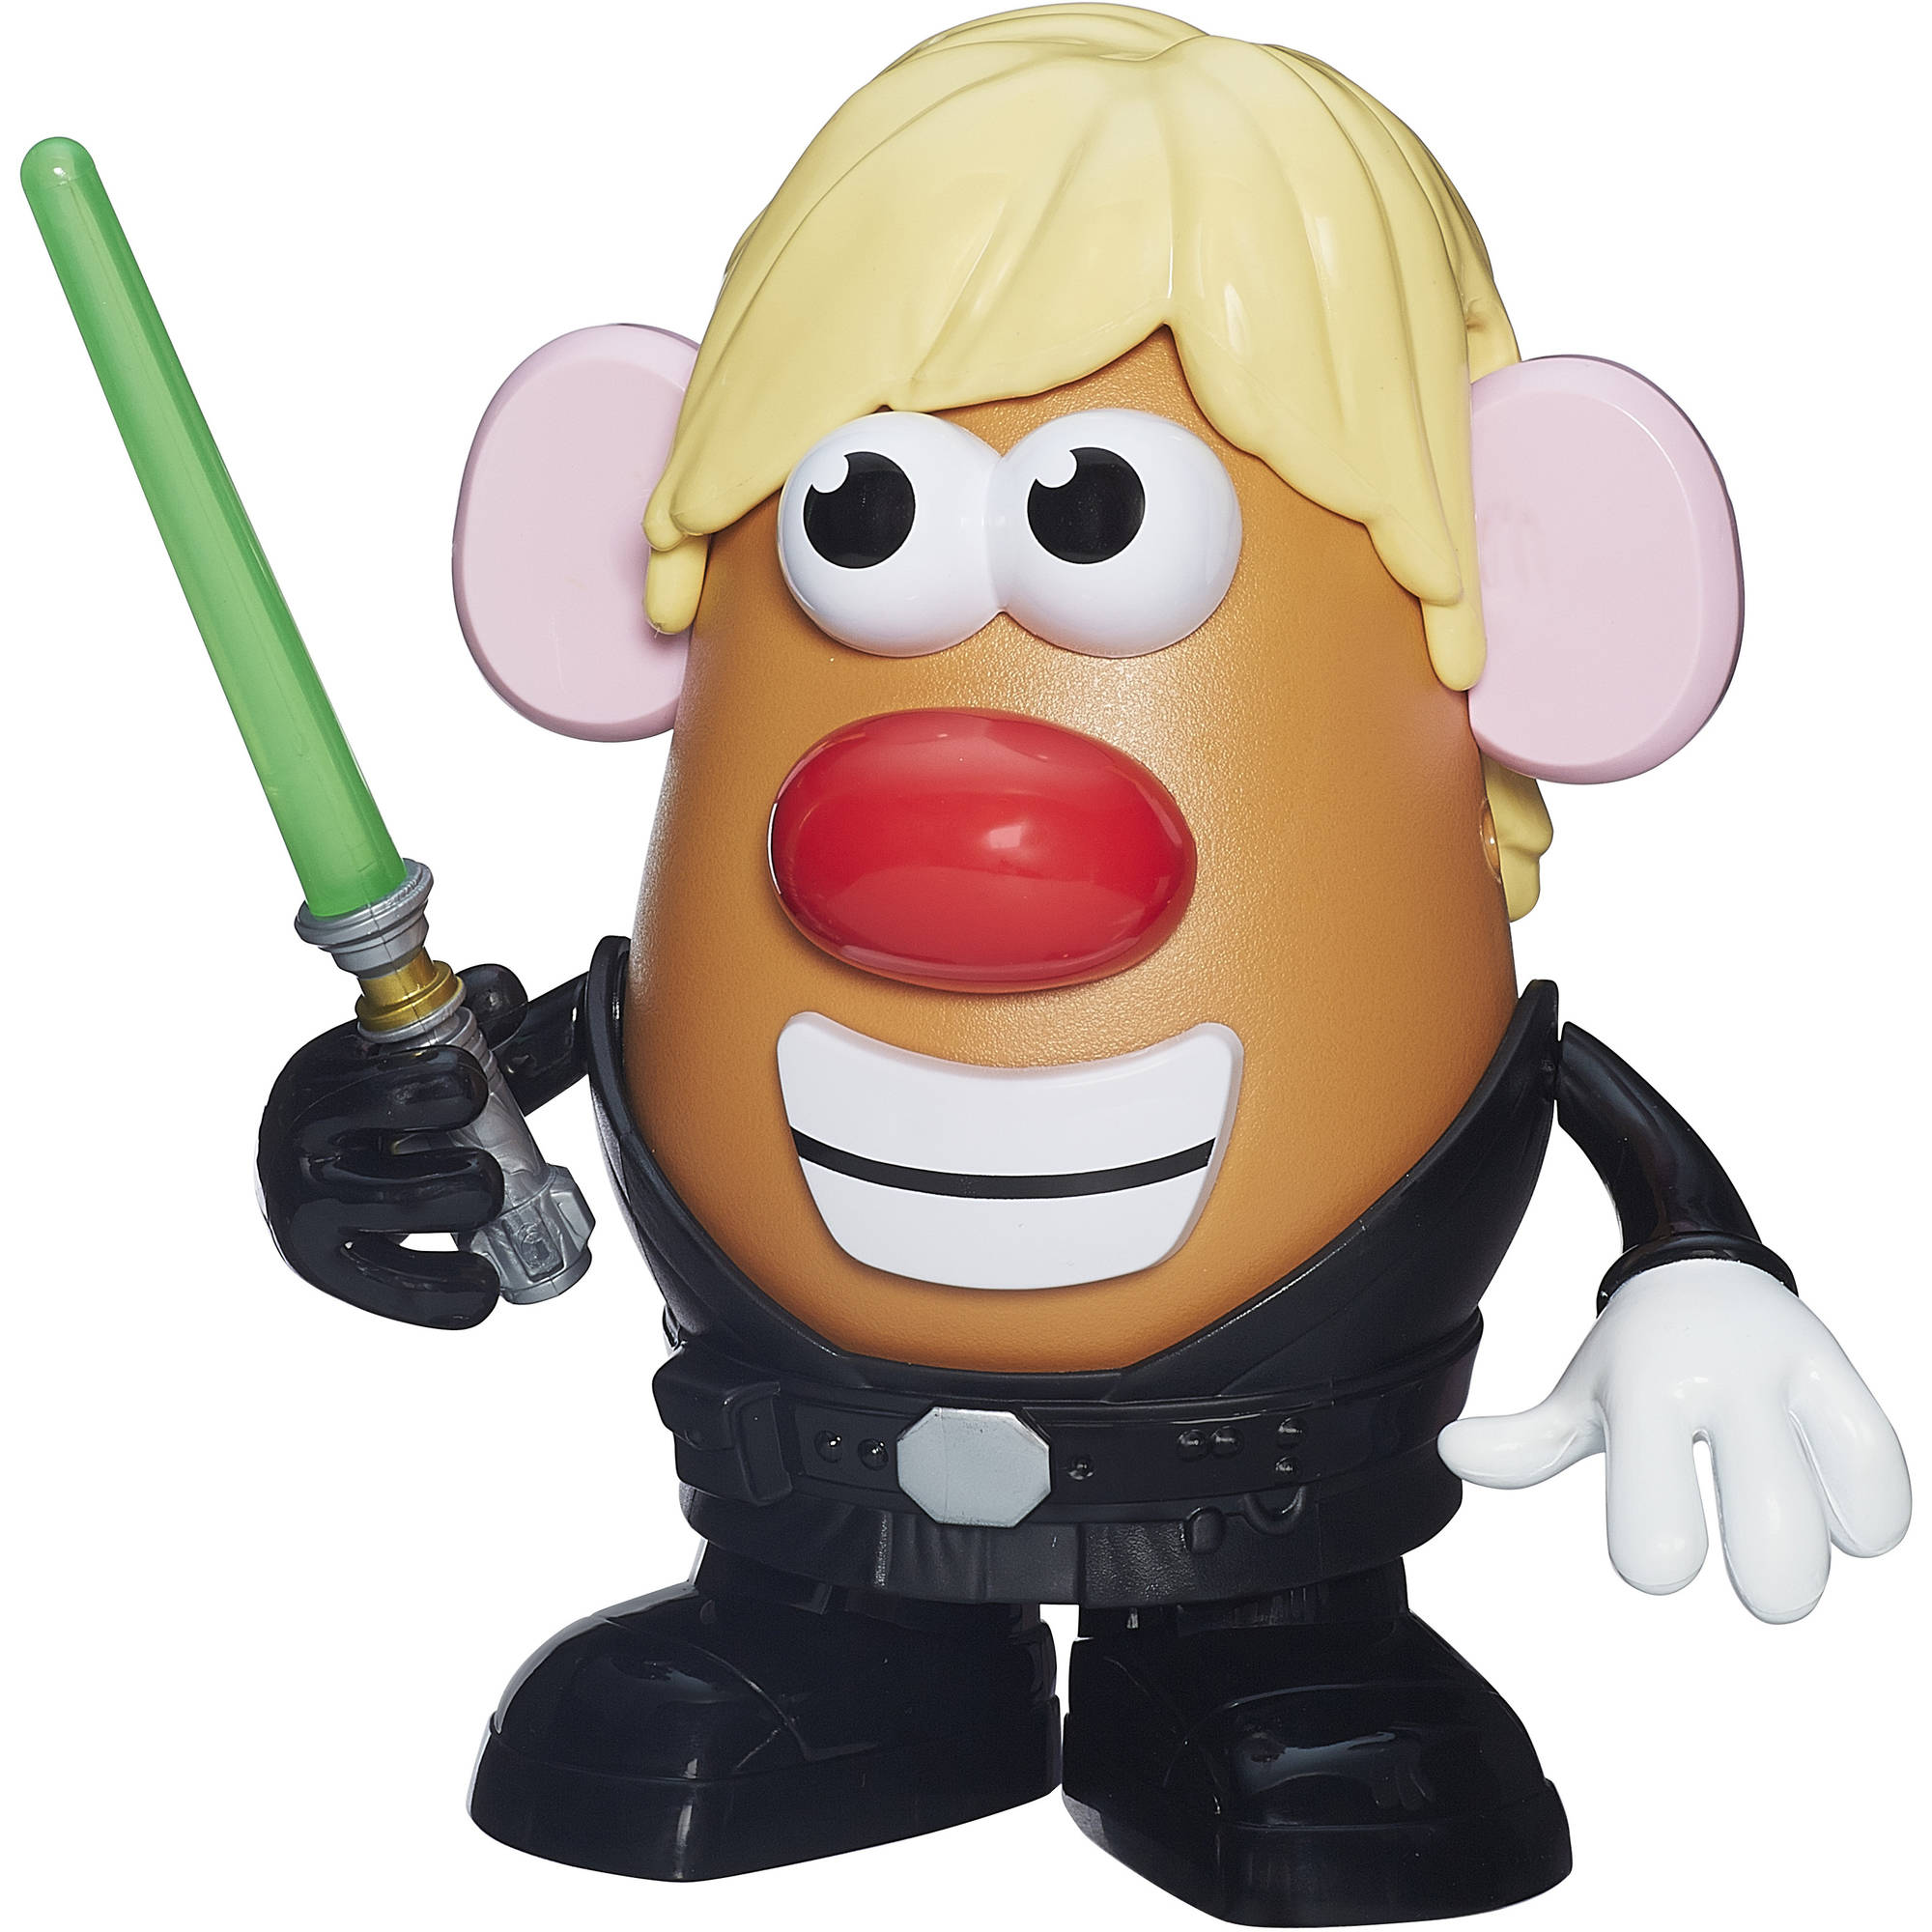 Playskool Mr. Potato Head Luke Frywalker Image 1 of 12